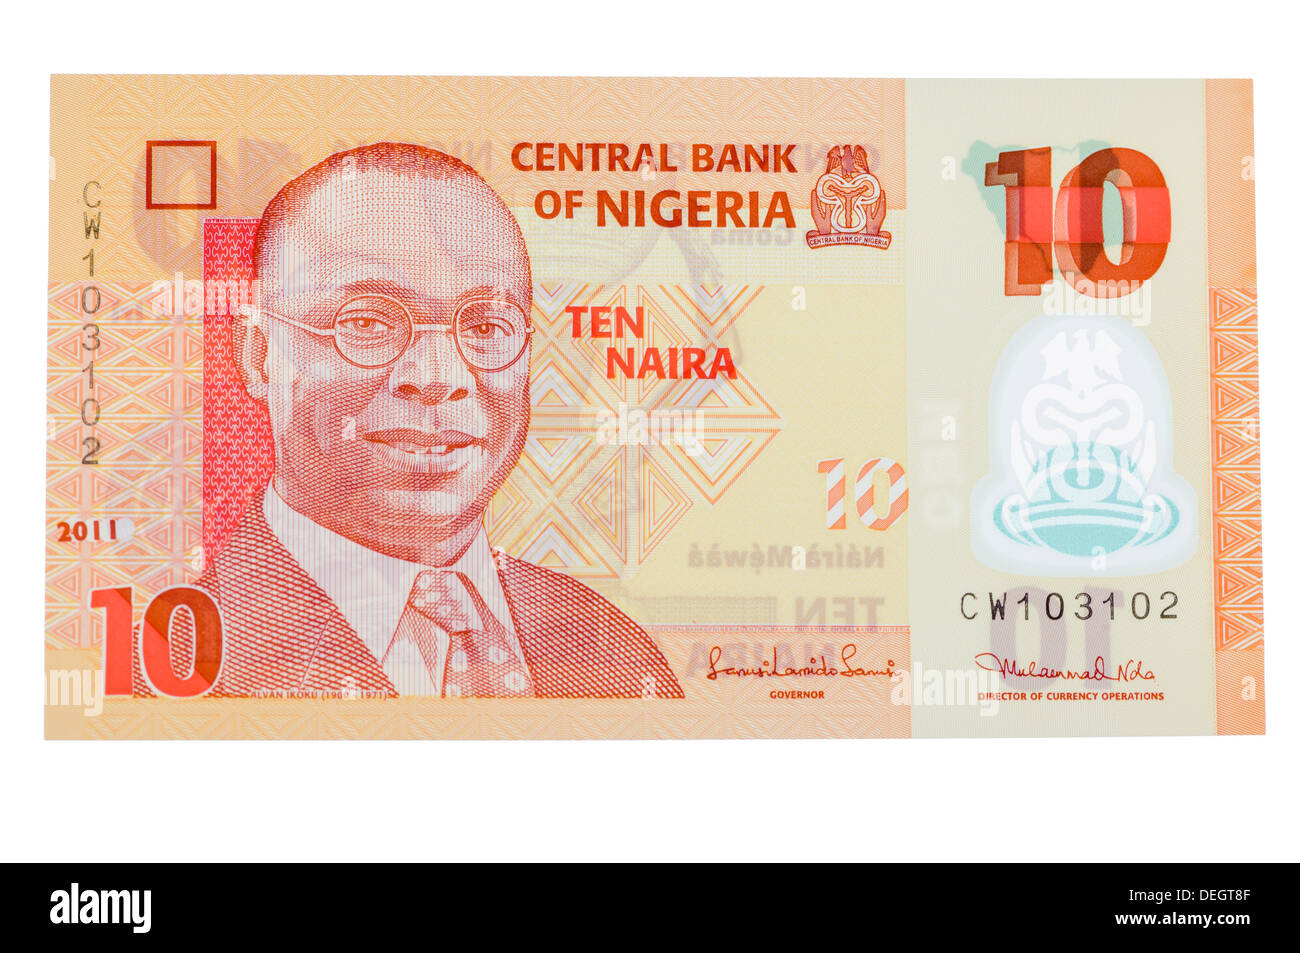 Central Bank of Nigeria 10 Naira polymer (plastic) bank note - Stock Image